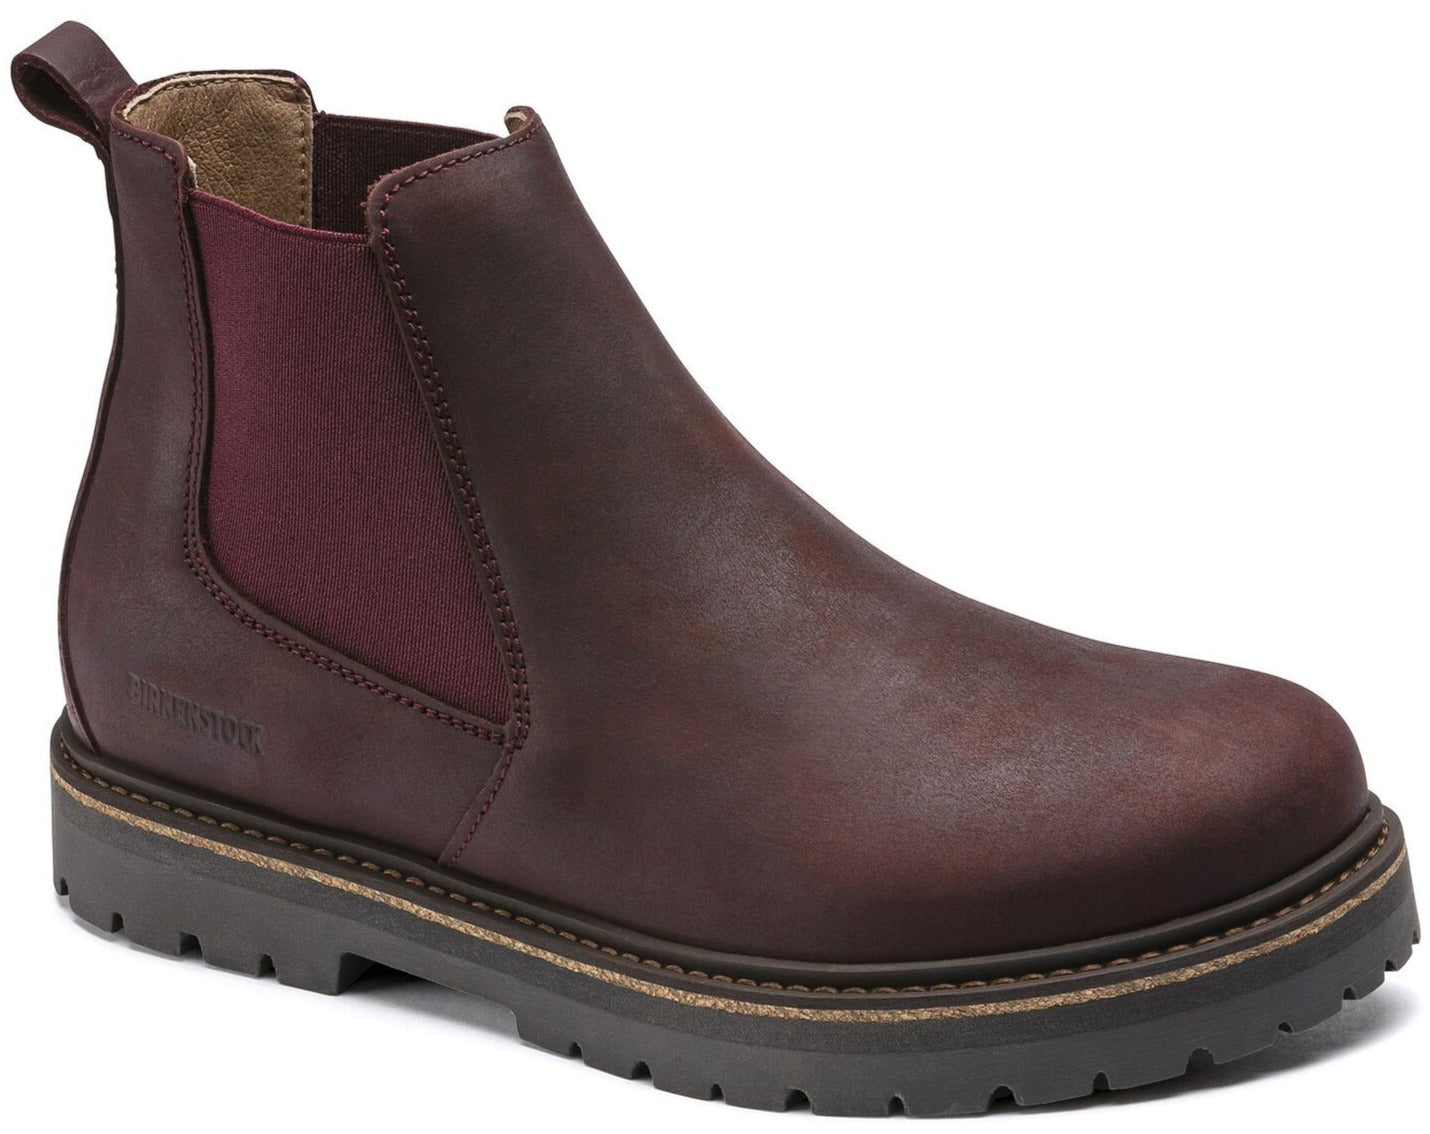 Stalon Women - Burgundy Nubuck Leather